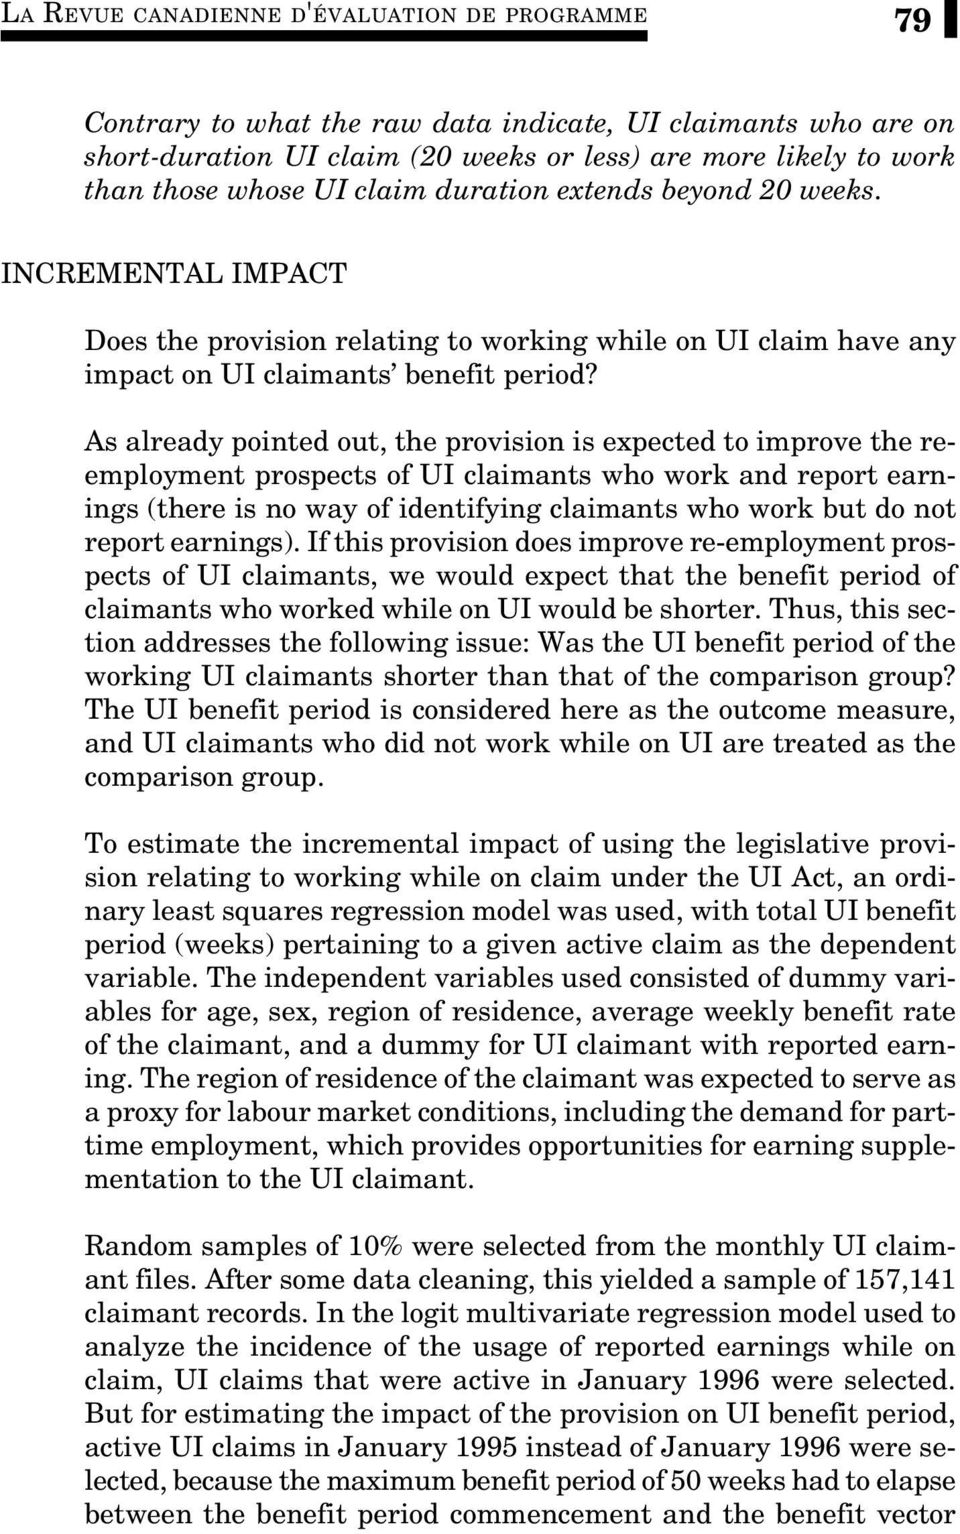 As already pointed out, the provision is expected to improve the reemployment prospects of UI claimants who work and report earnings (there is no way of identifying claimants who work but do not